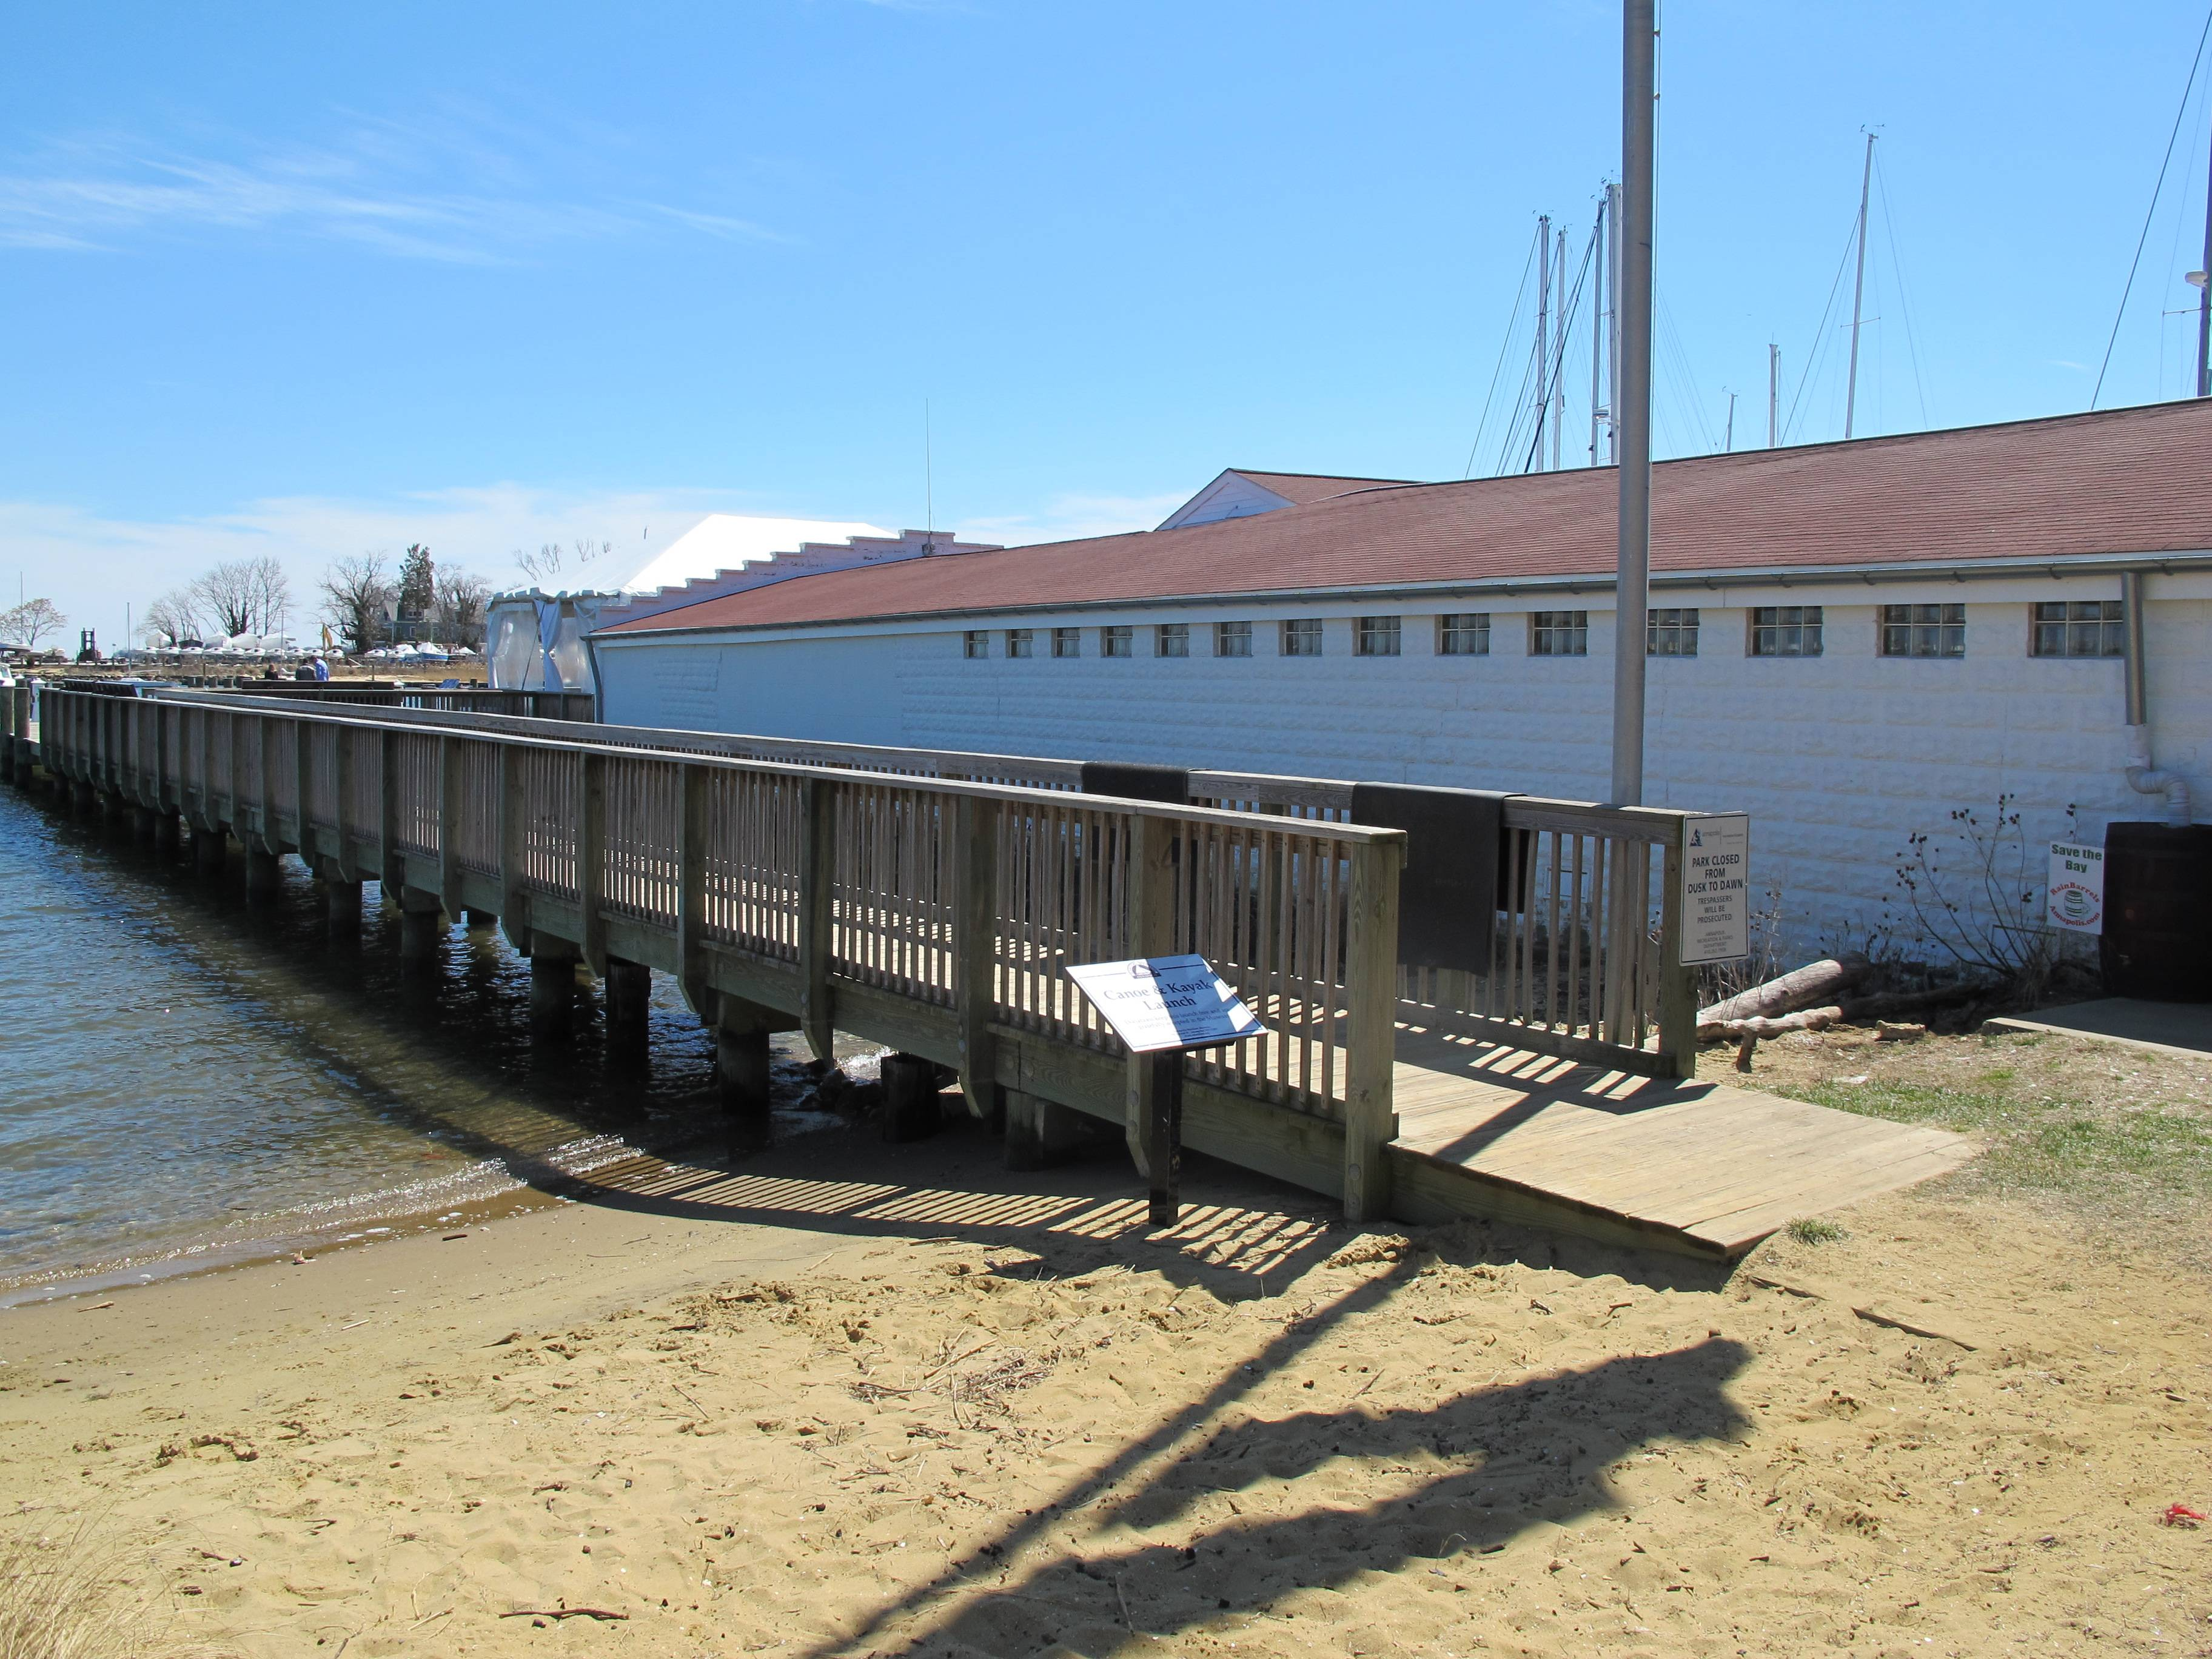 The Annapolis Maritime Museum includes a place for people to launch kayaks and canoes.